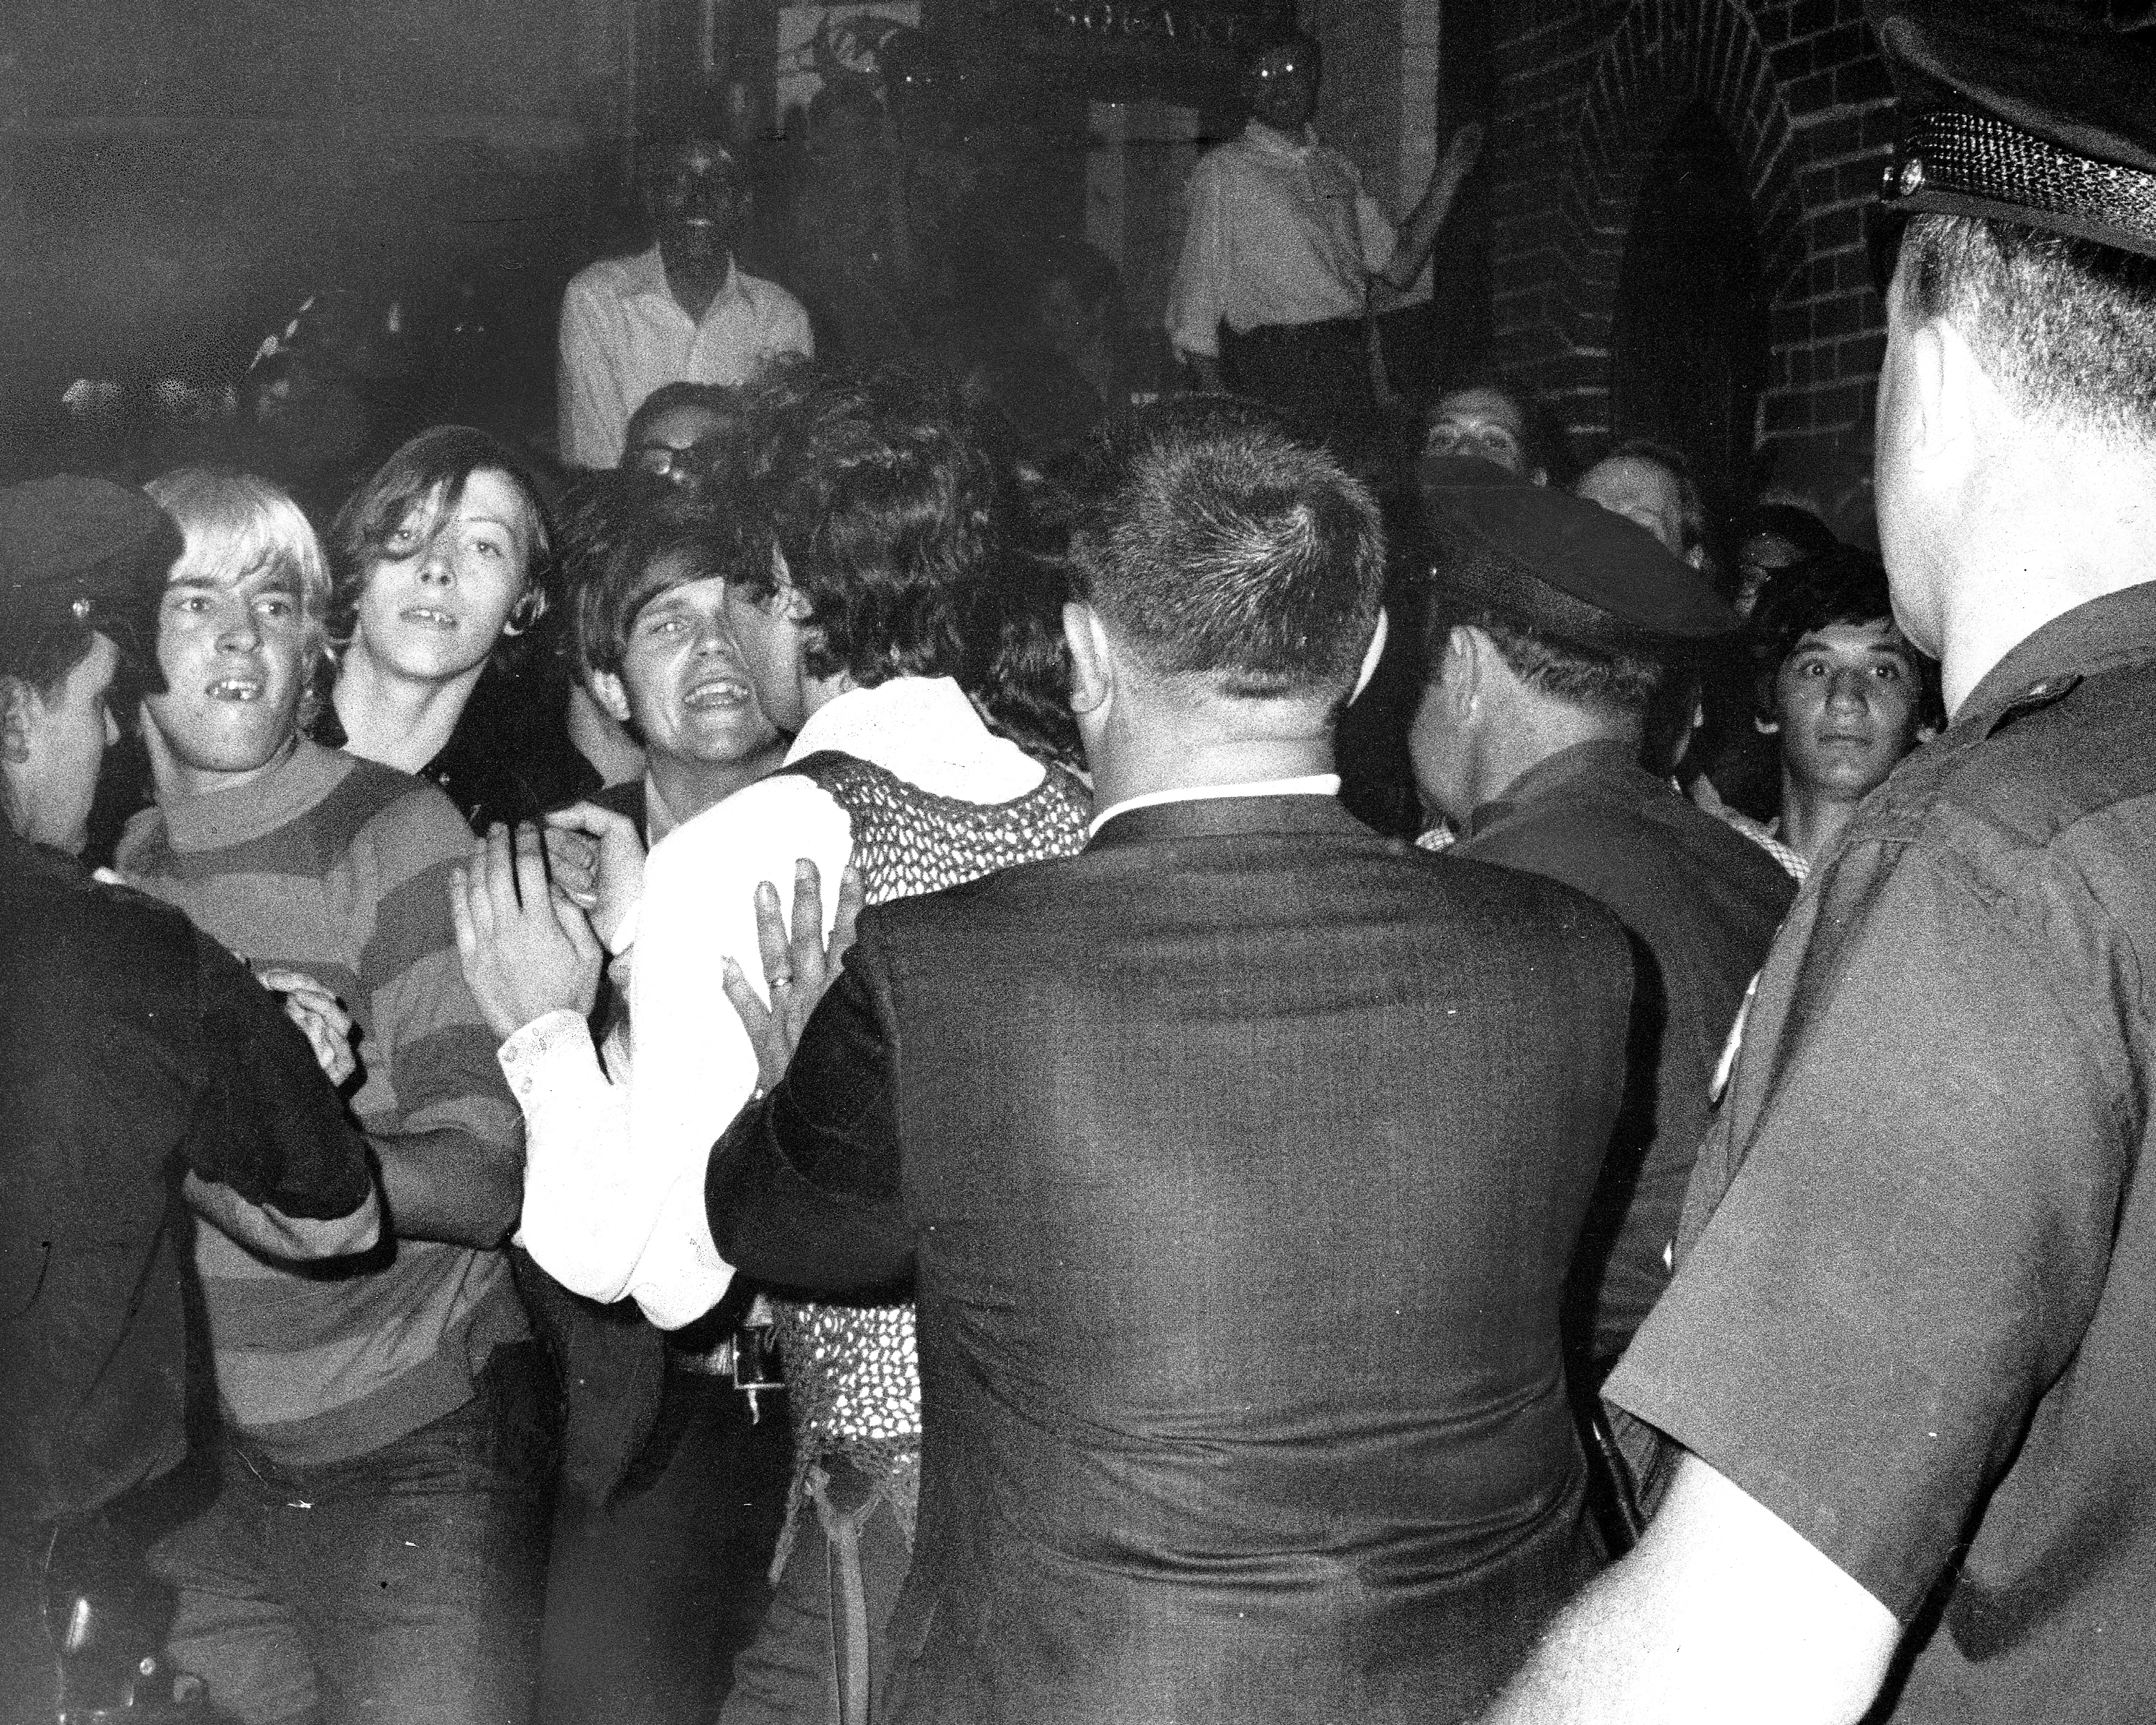 Remembering the Stonewall Riots, 50 years after they sparked the gay rights movement